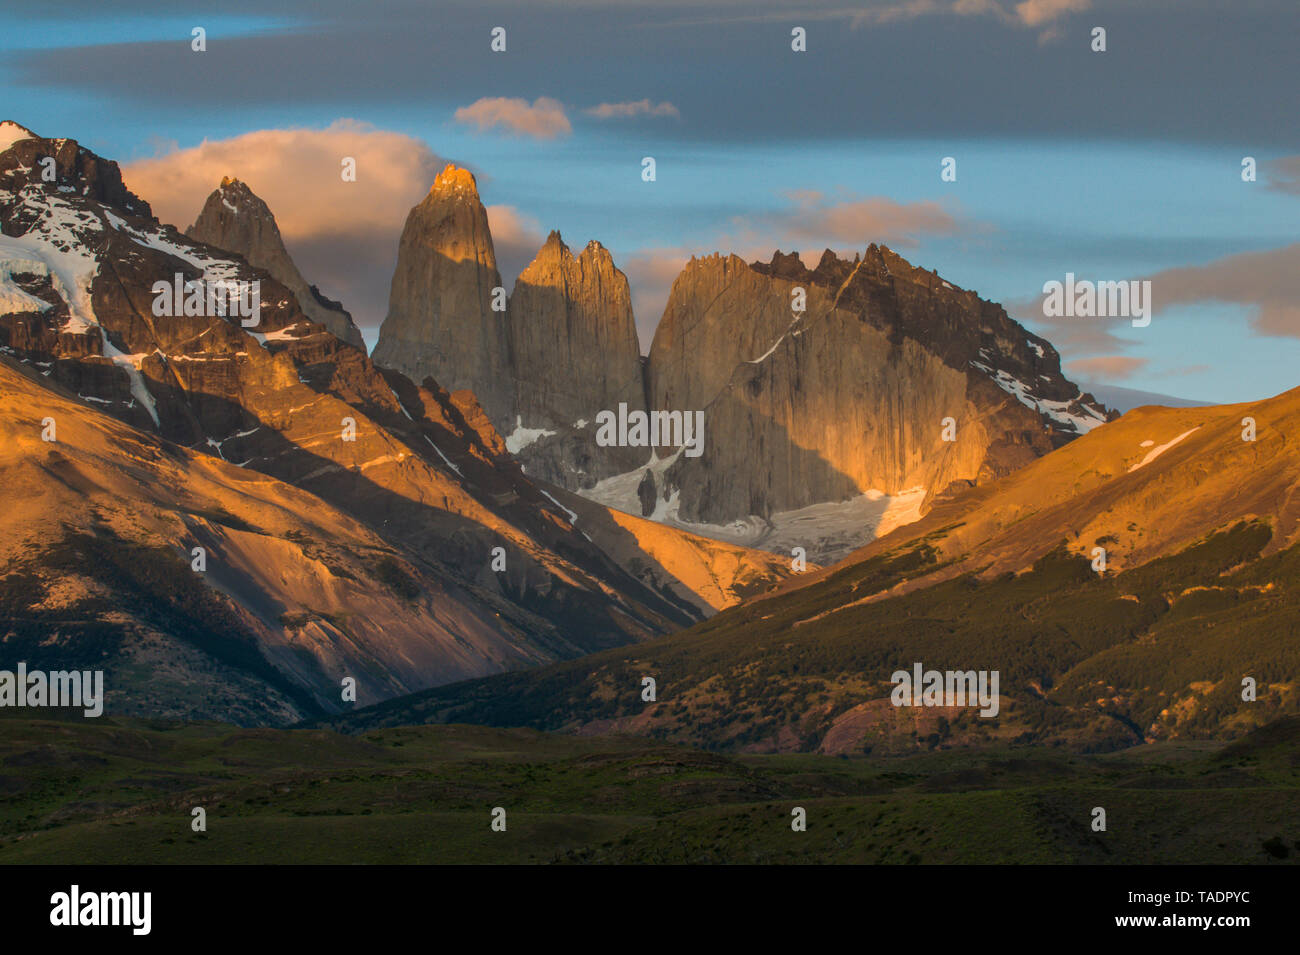 Chile, Patagonia, Torres del Paine National Park, mountainscape in early morning light - Stock Image